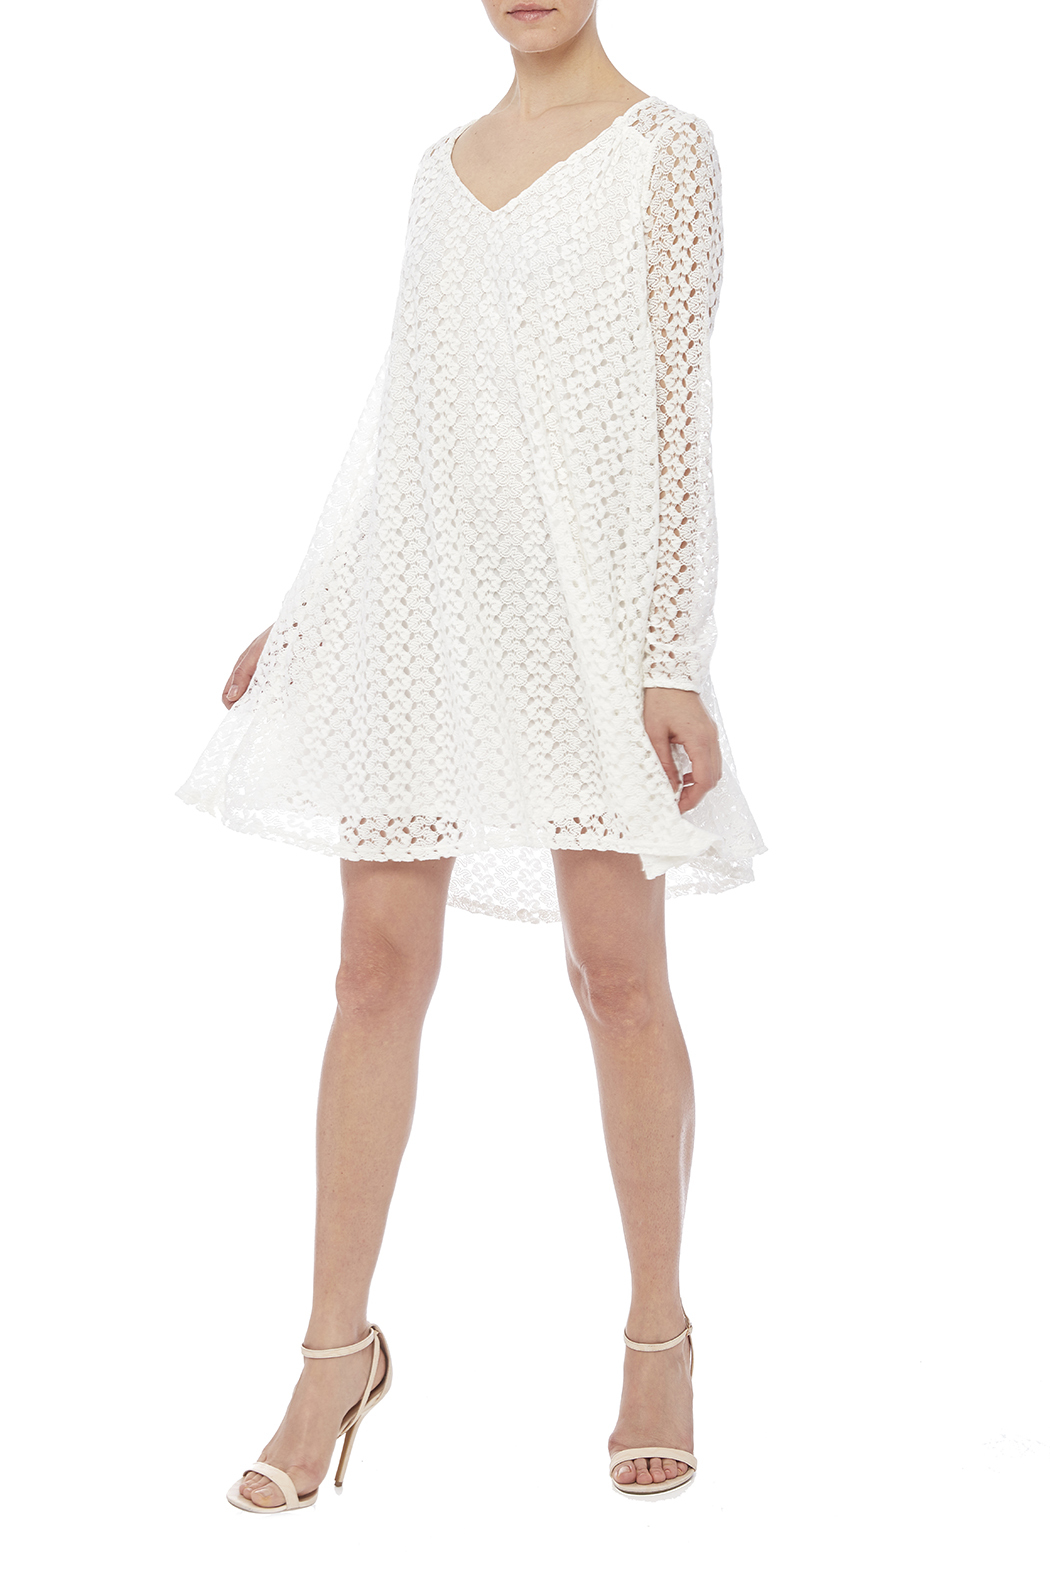 Peach Love California White Lace Dress - Front Full Image